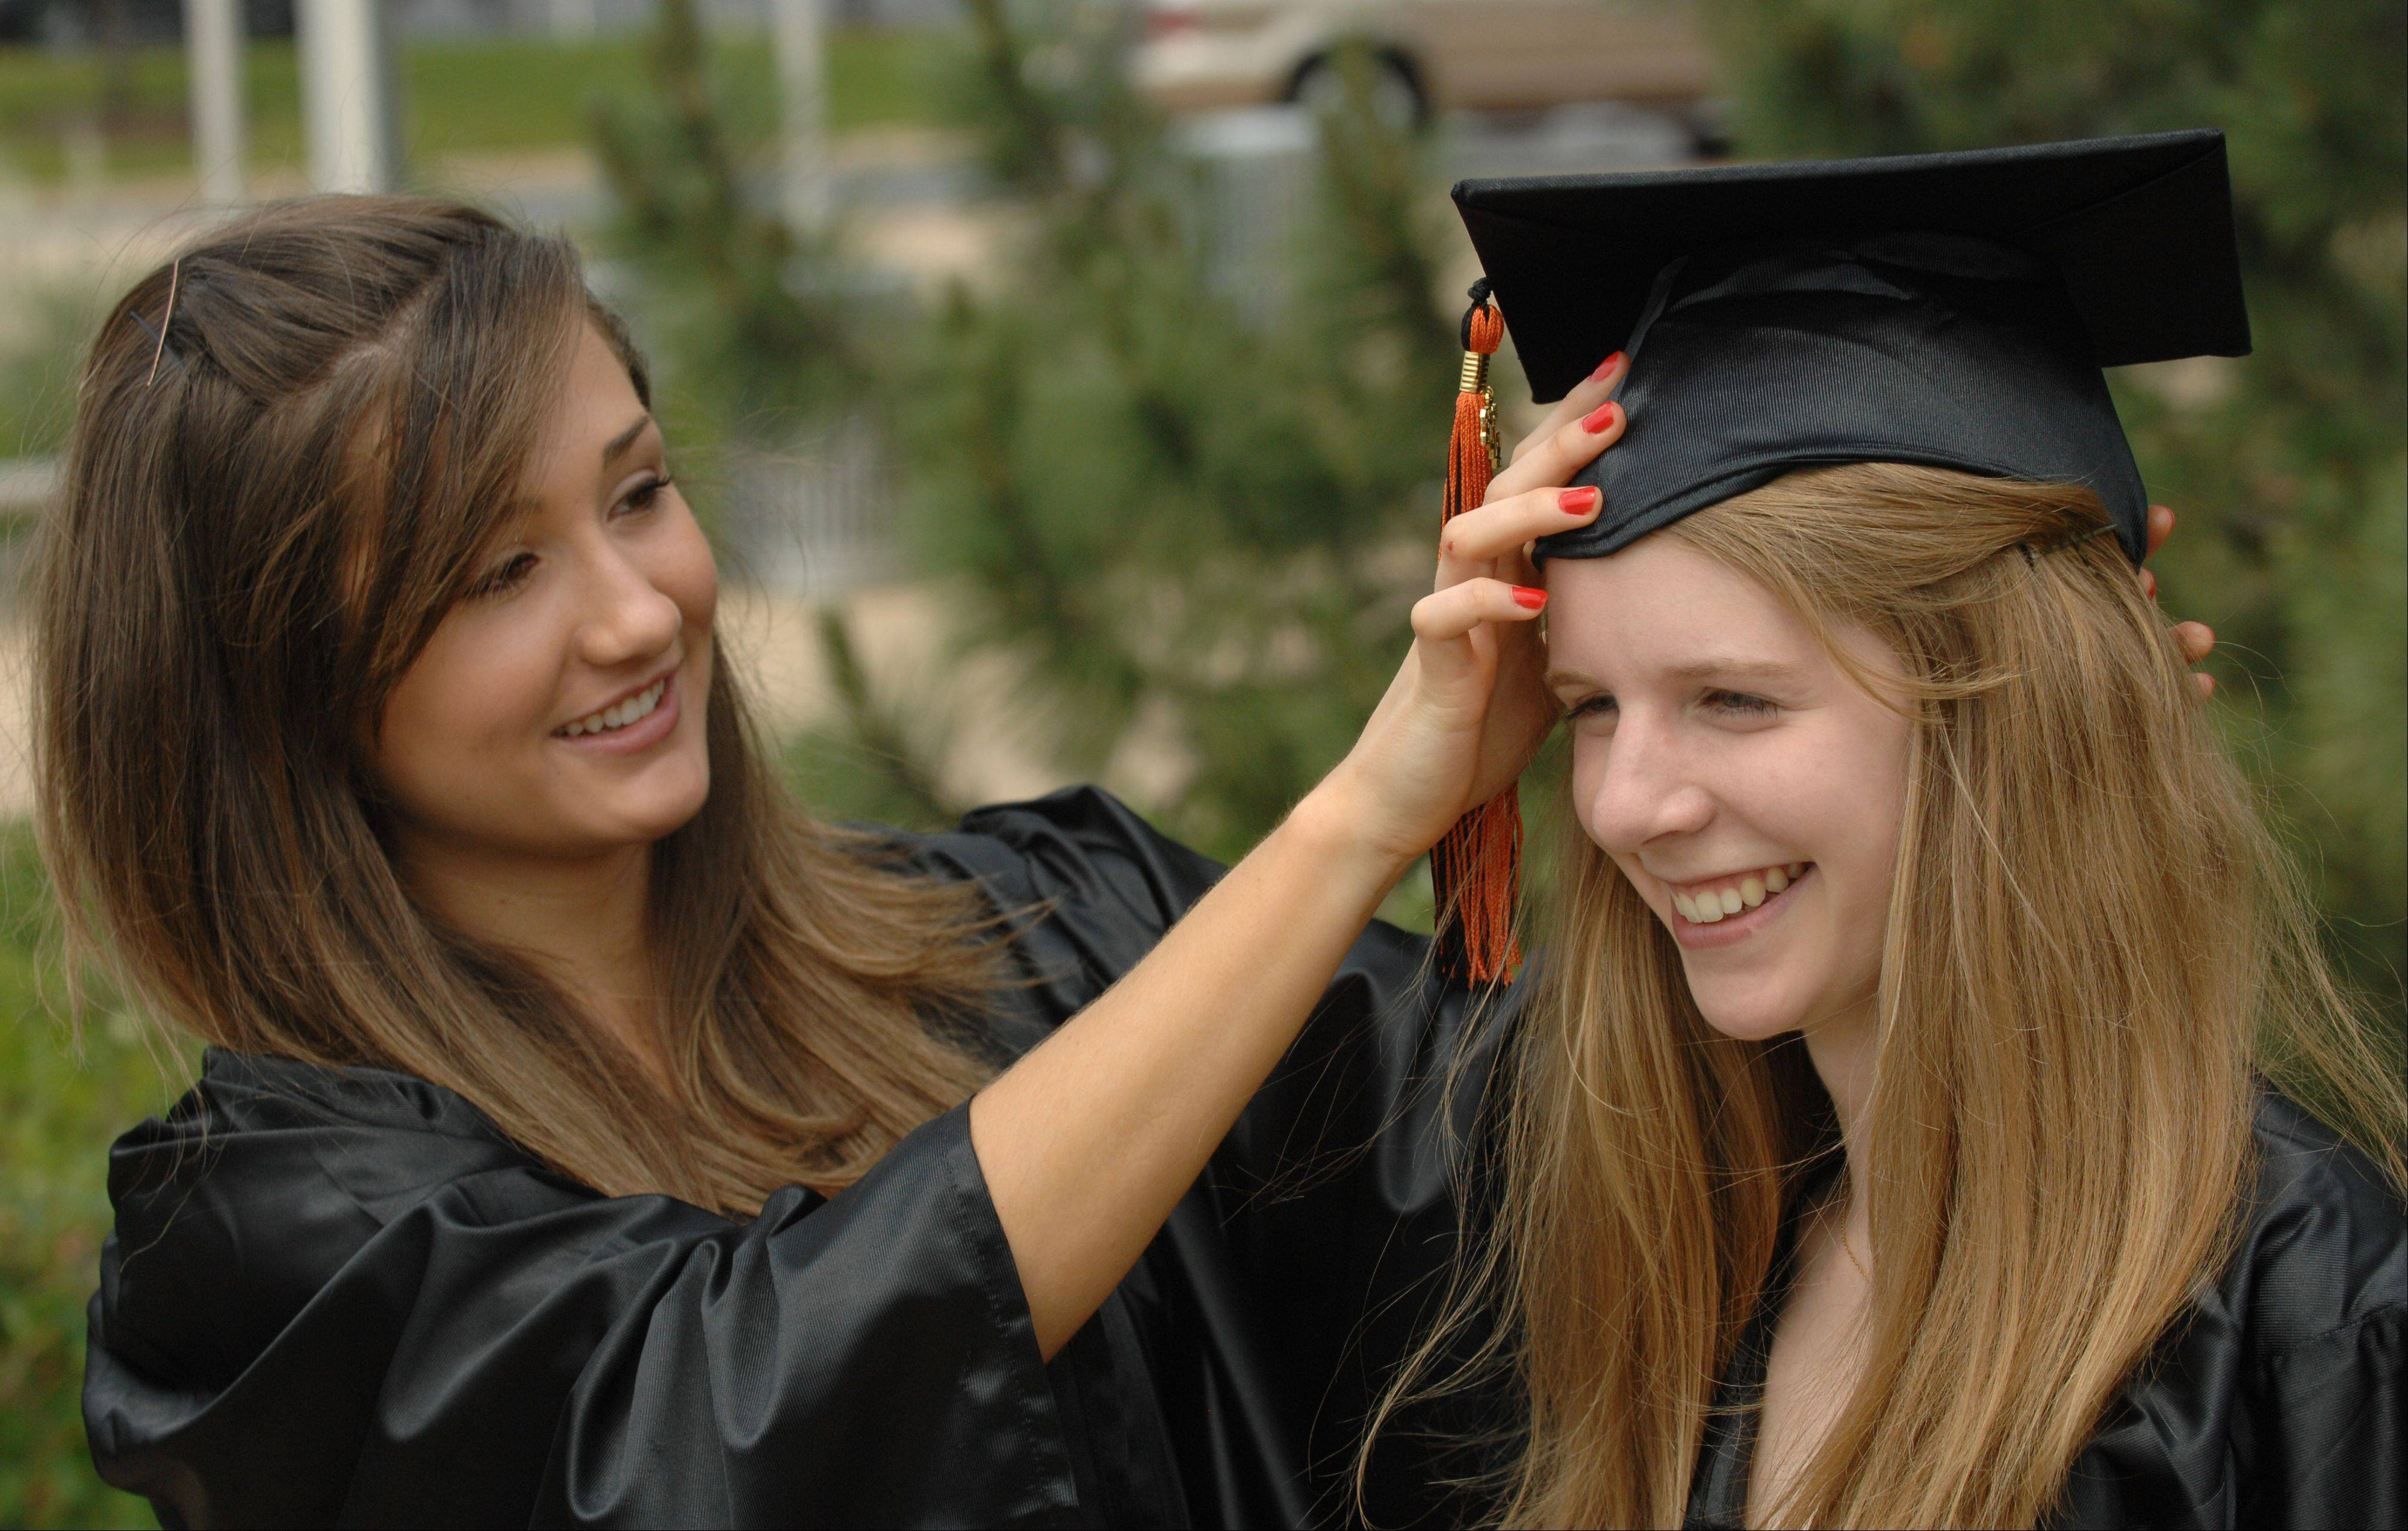 Kinzie Roberton, left, and Laura Hagen get ready Saturday for the Wheaton Warrenville South Graduation at College of DuPage. They are both from Wheaton.